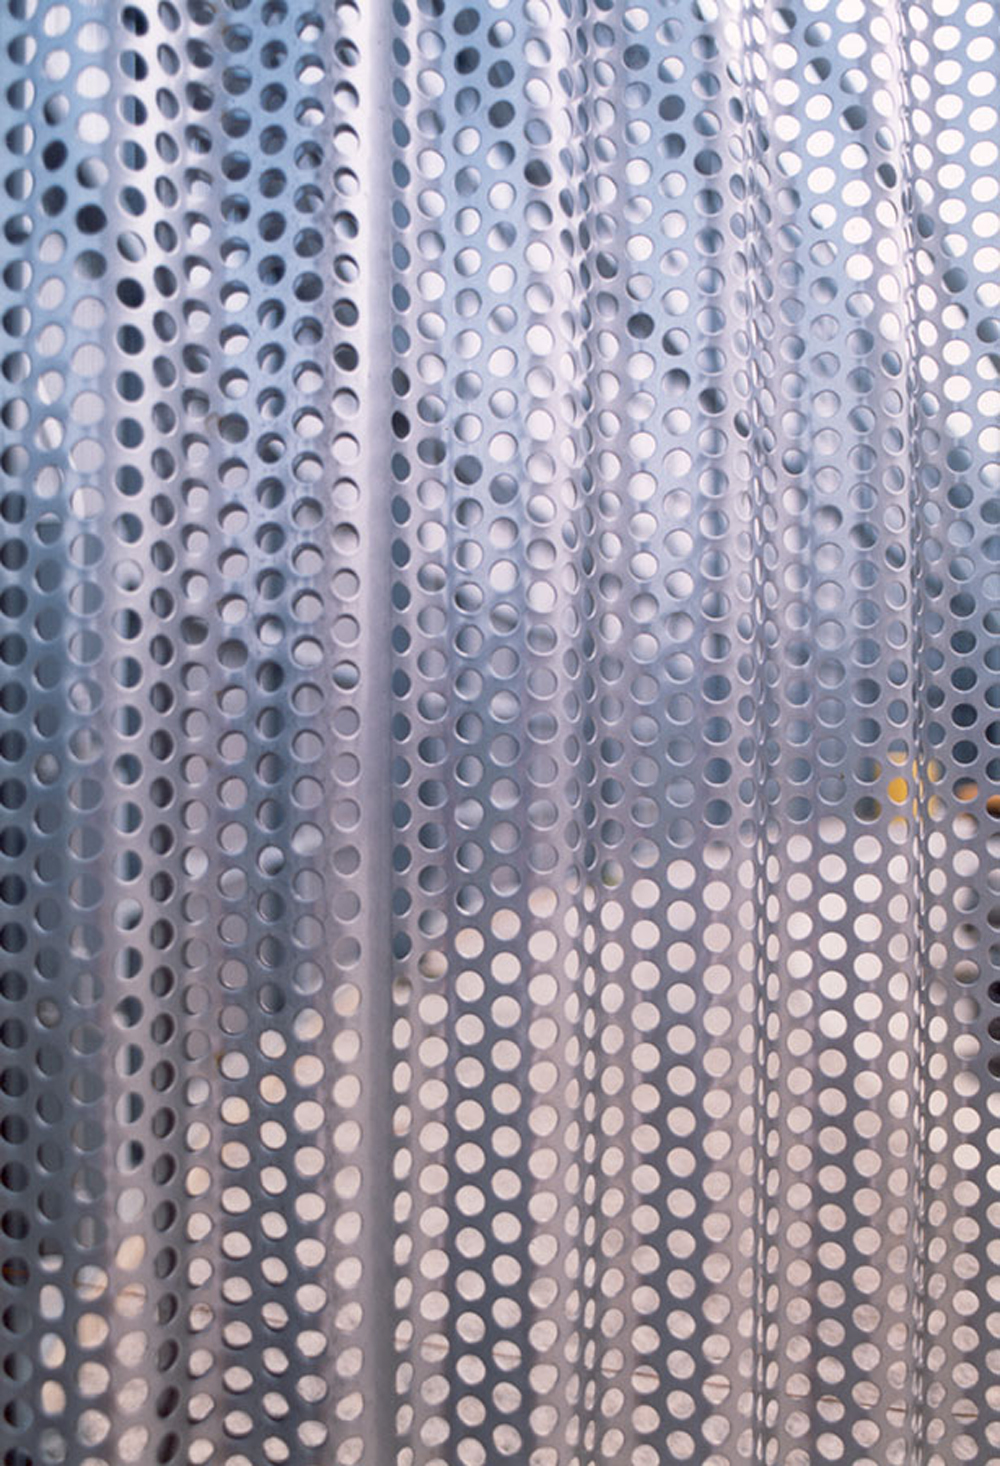 University of Pennsylvania Gateway Complex, corrugated perforated stainless steel panel